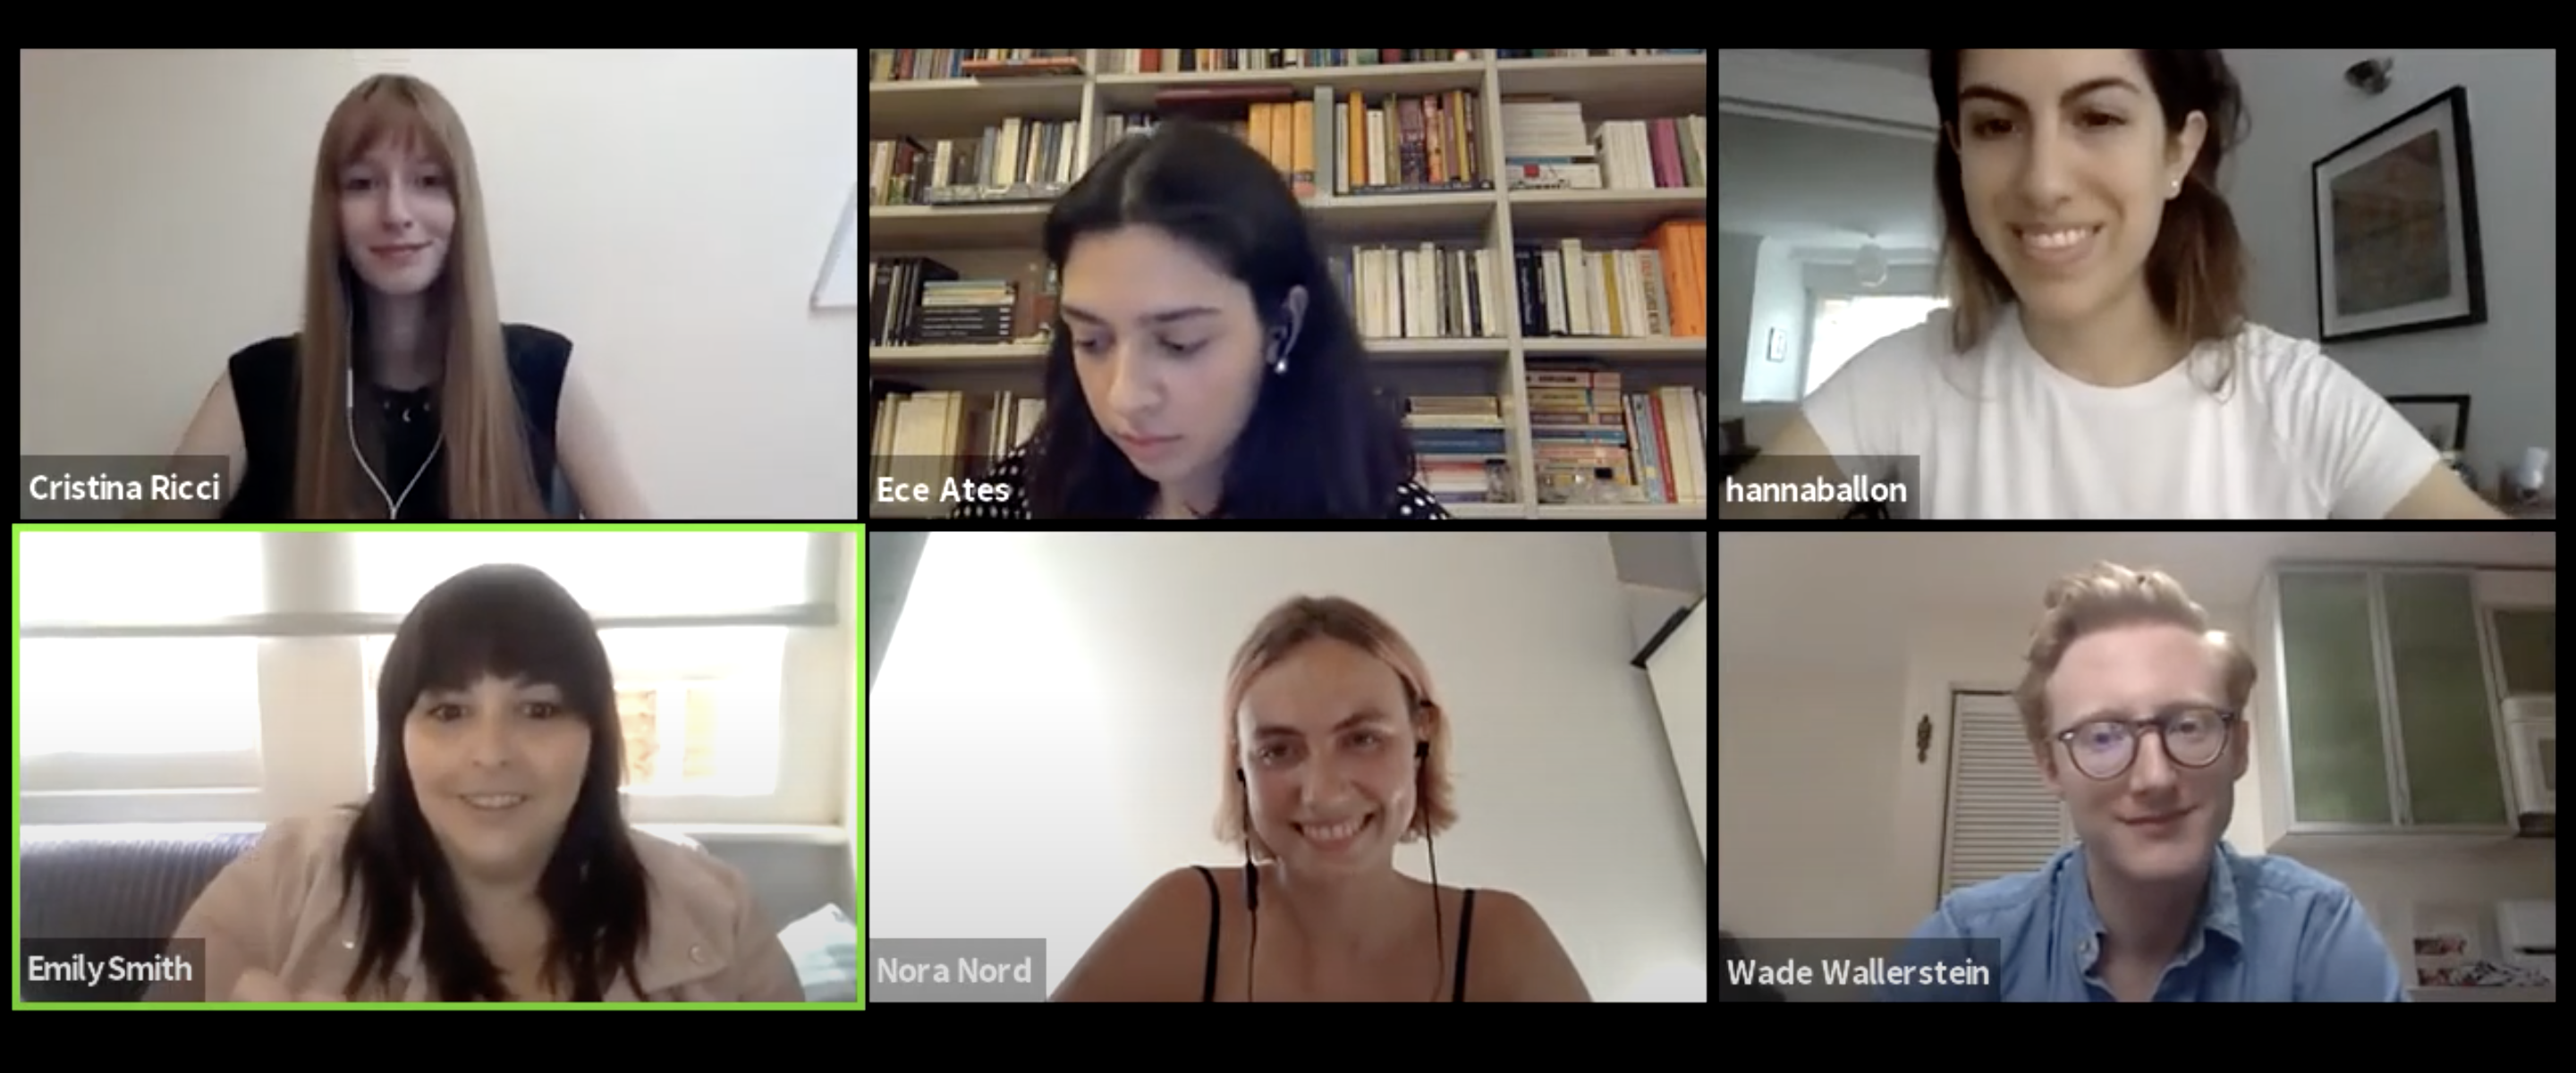 five participants in the live panel discussion on